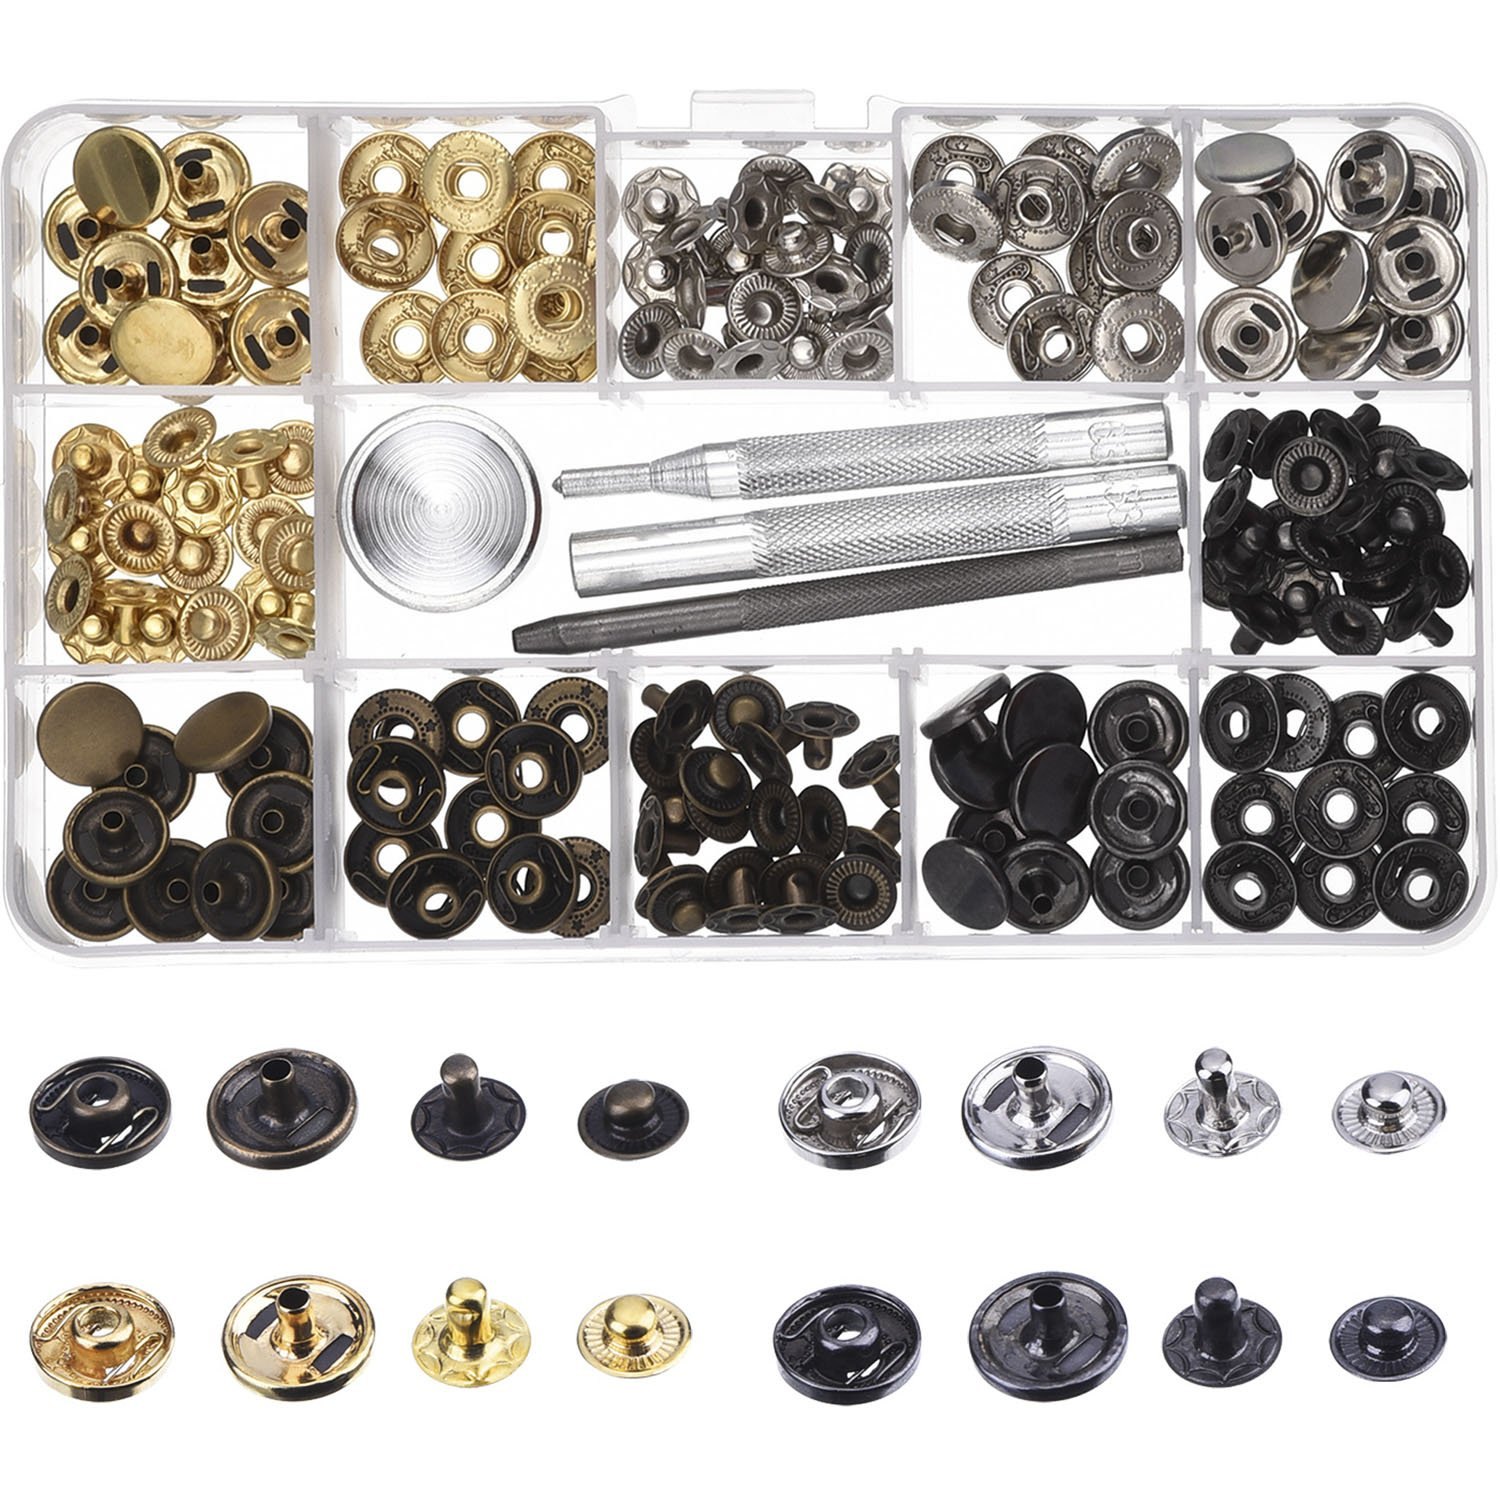 ce2ab1696 Amazon.com  Outus Copper Snap Fasteners Press Studs No Sewing Clothing Snaps  Button 39 Set with Fixing Tool for Fabric